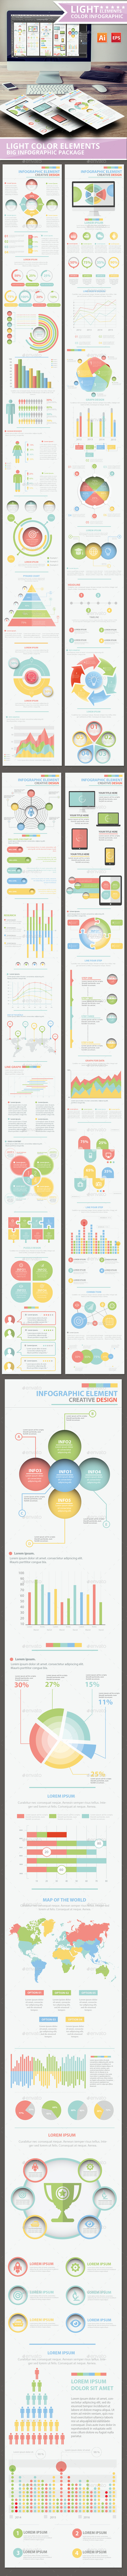 Light Color Info Graphic Elements Design